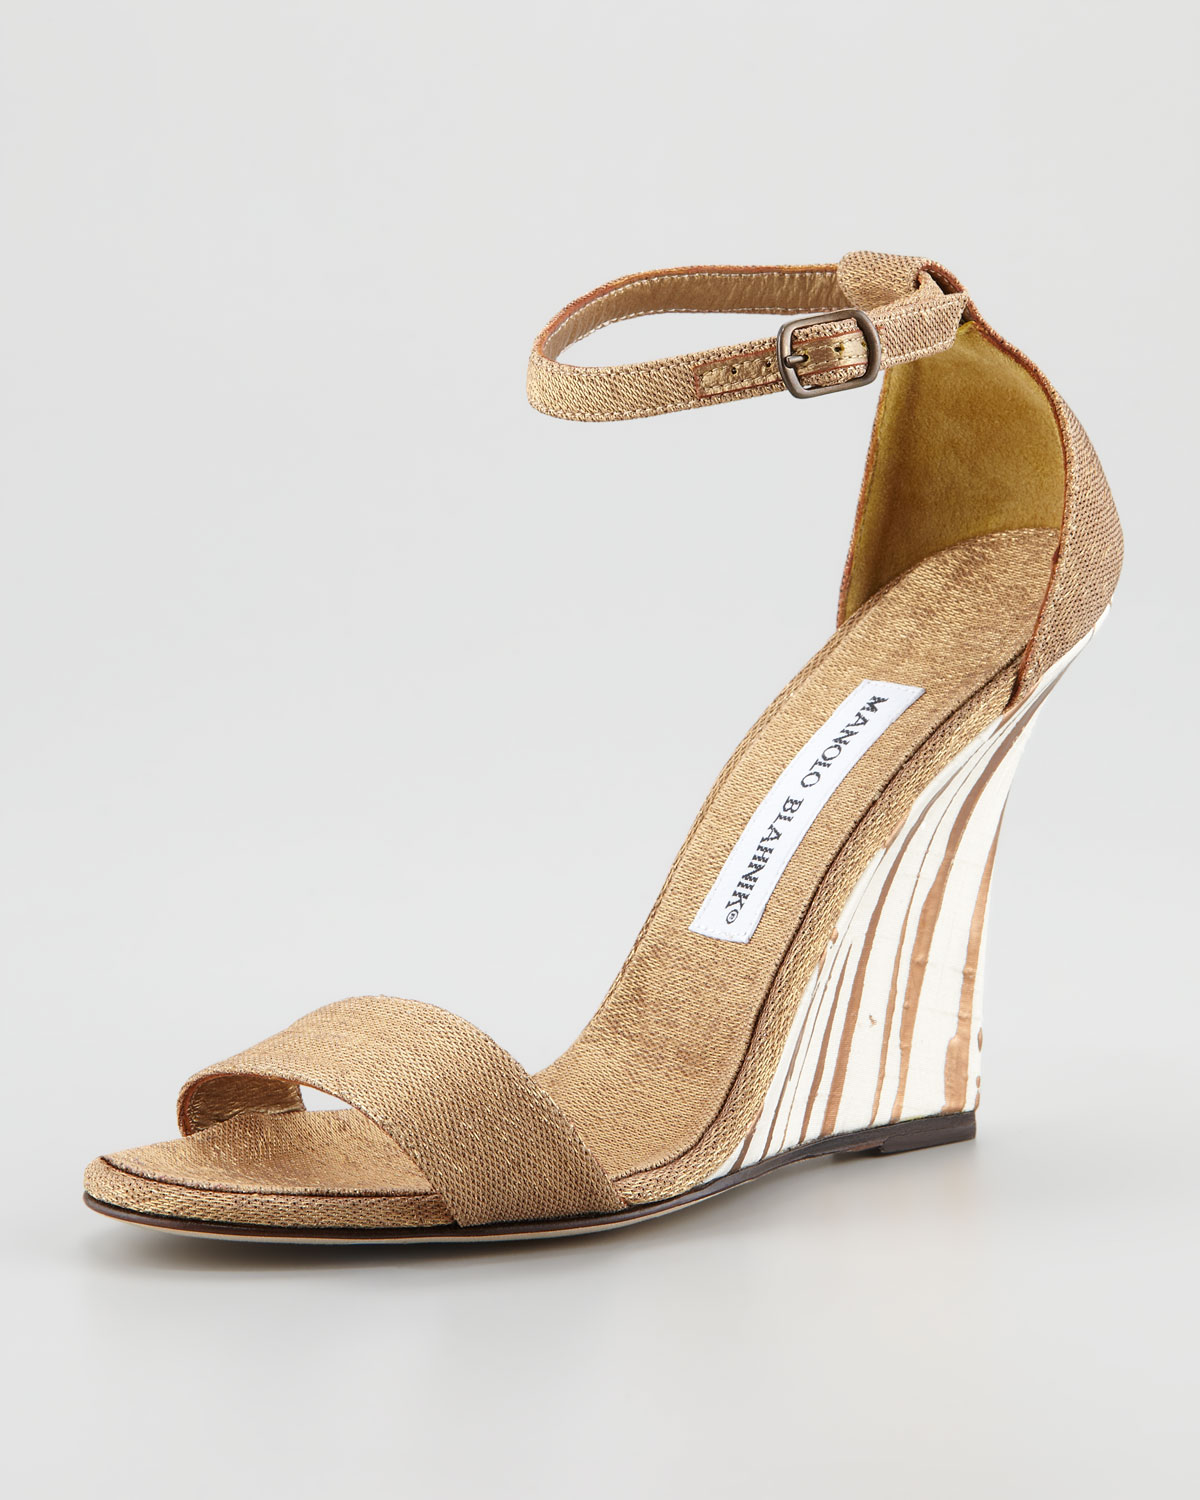 Gold Wedge Shoes Uk